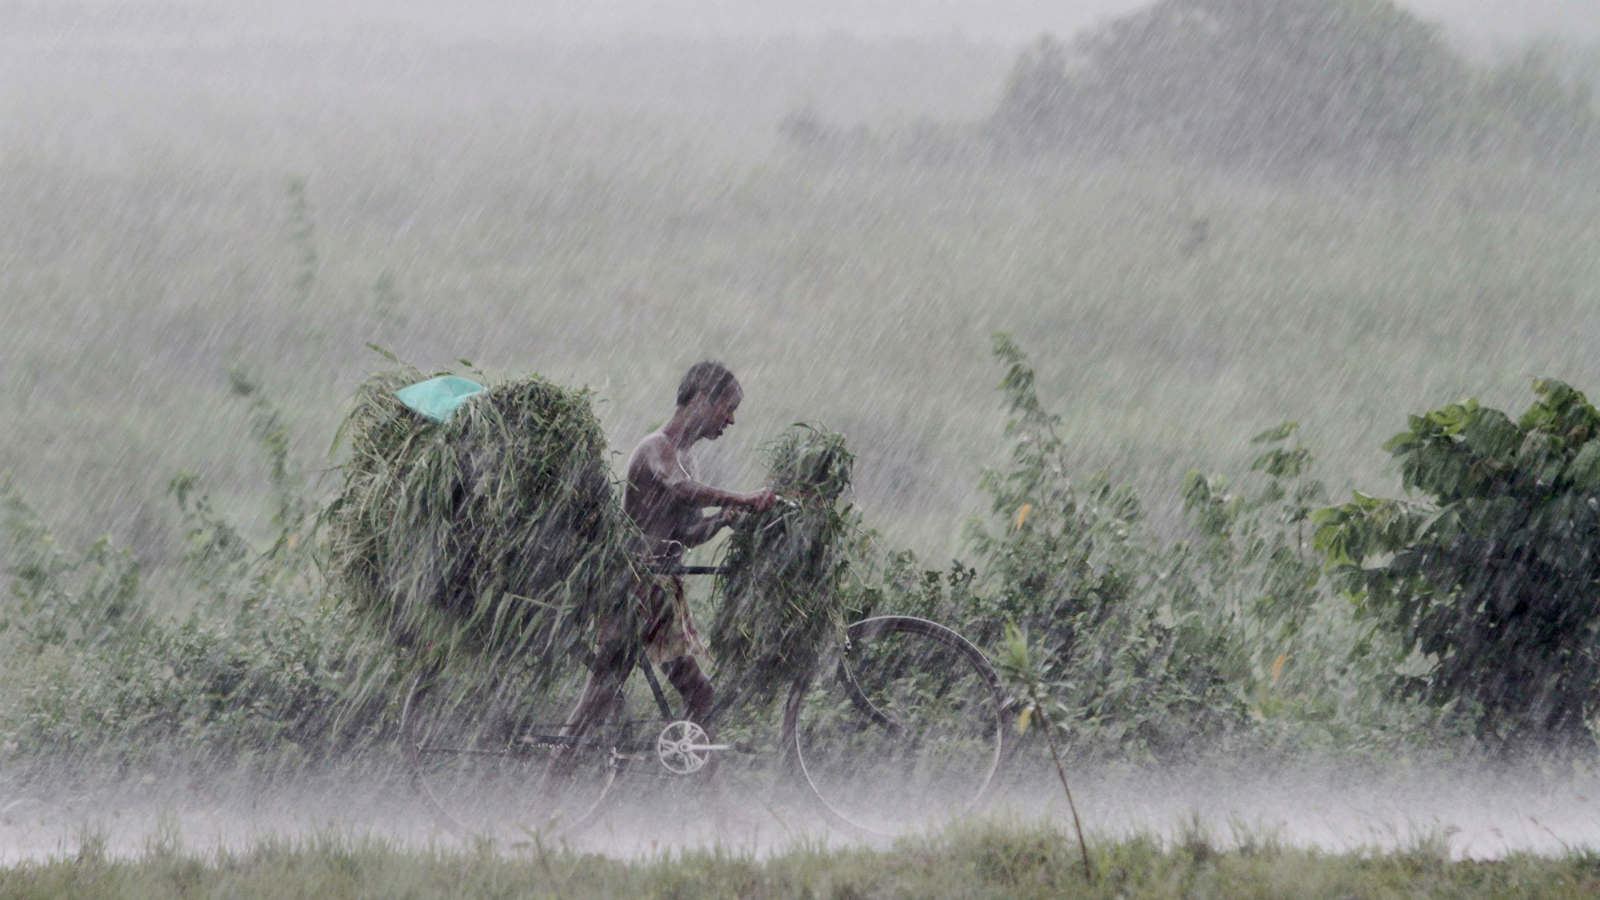 An Indian villager walks back home with a bicycle loaded with grass for his cattle during a heavy downpour on the outskirts of Bhubaneswar, India, Saturday, 11 July 2015.